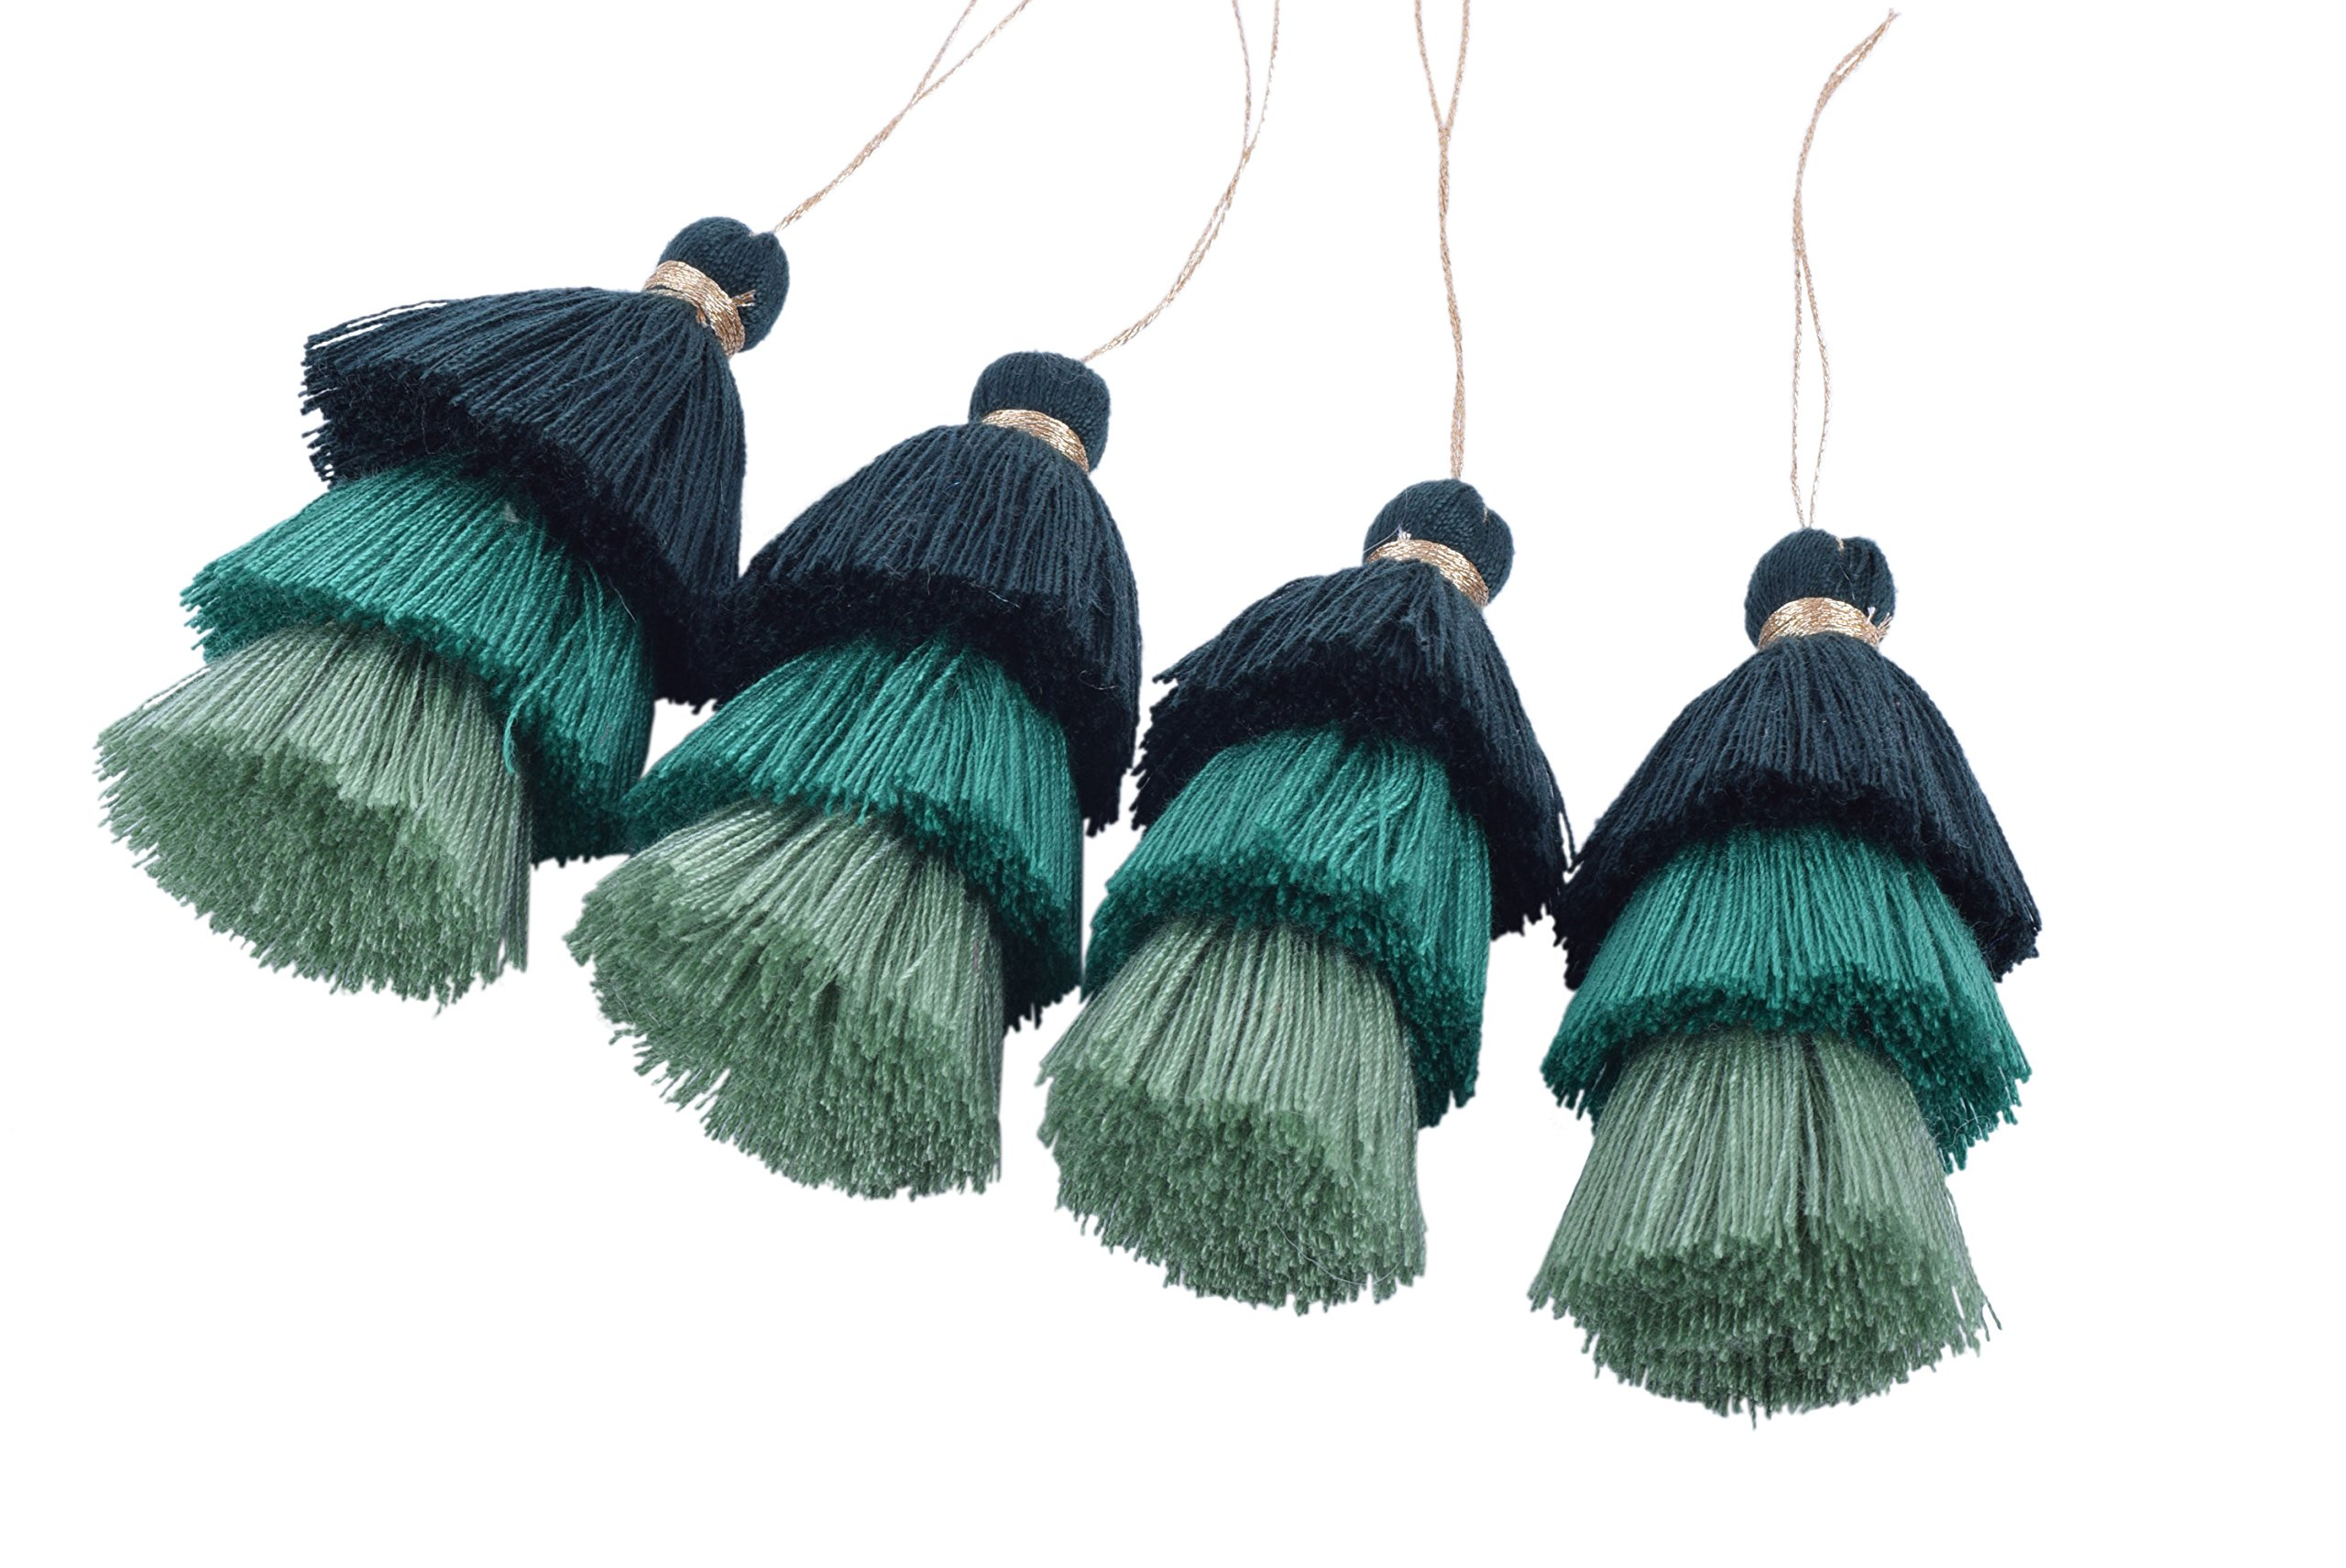 KONMAY Bulk 20pcs Tri-Layered Tassels with Hanging Loop for Jewelry Making, Clothing by KONMAY